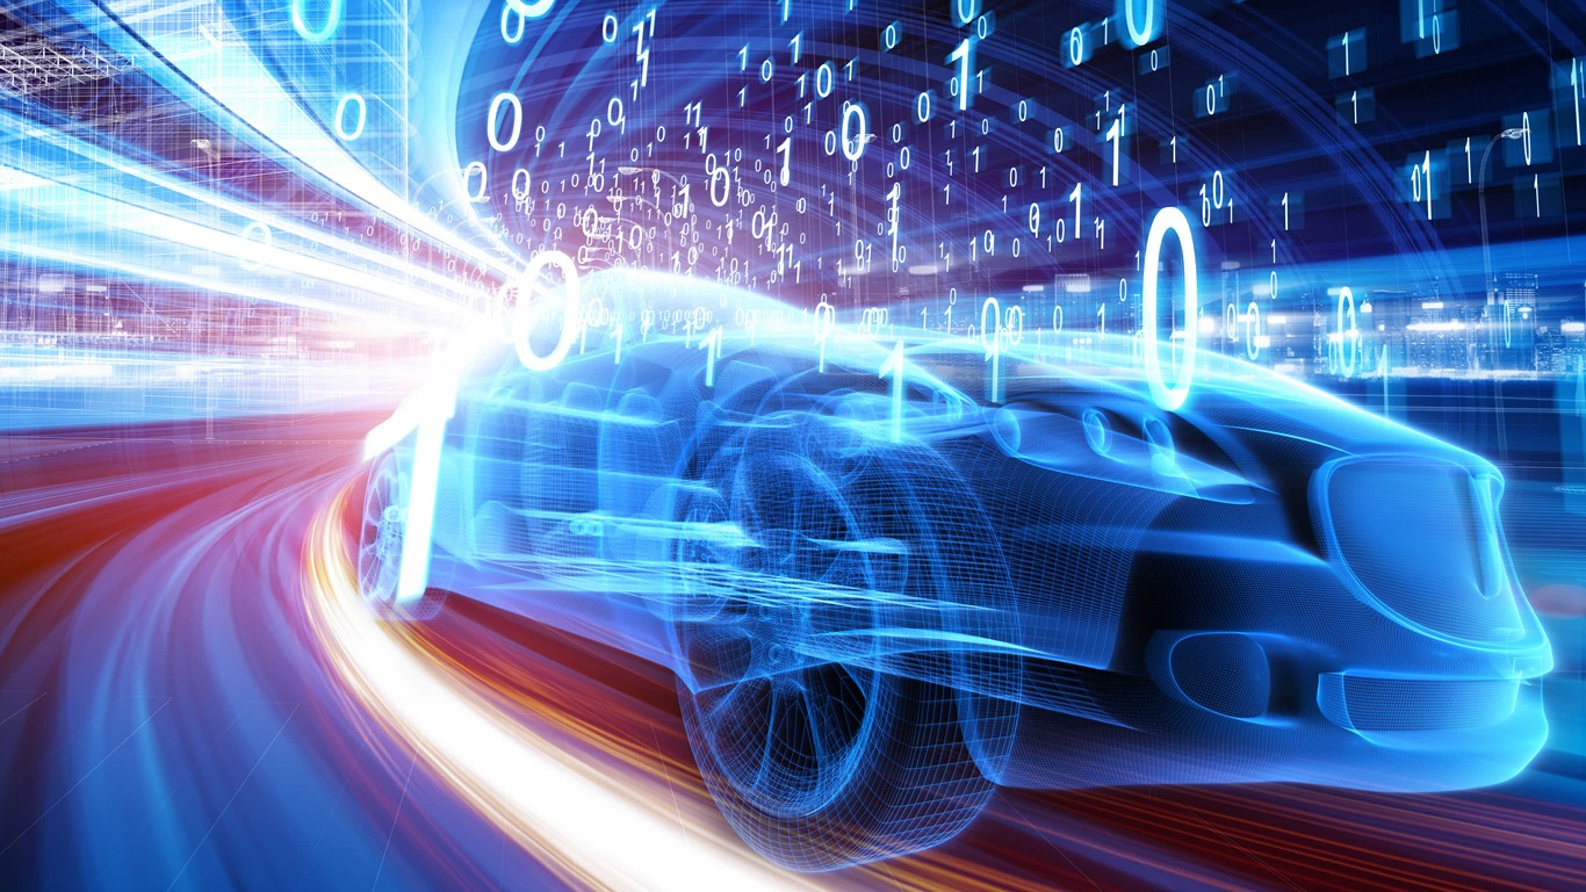 CES 2019: The rise of AI in automotive - Microsoft Industry